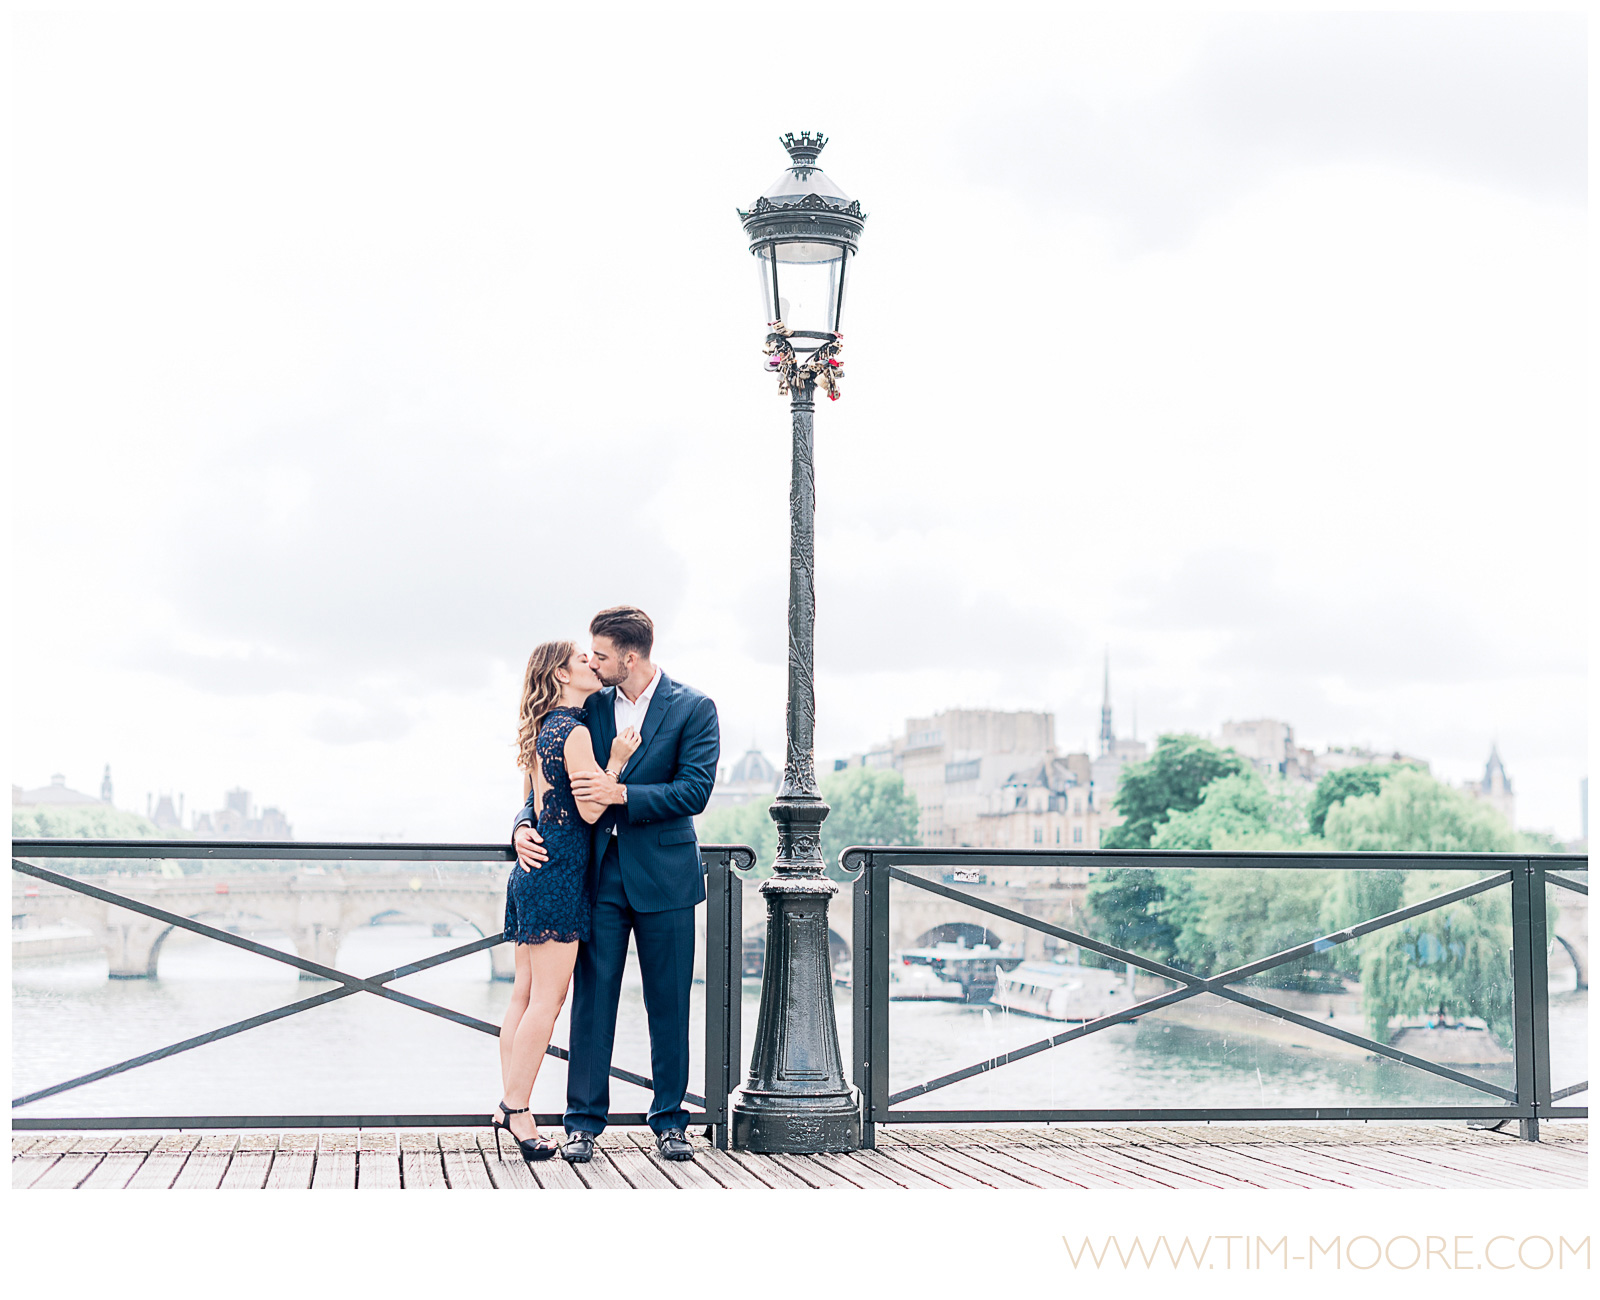 Paris photographer Tim Moore - Rosy and Kenny enjoying spring time just after she said Yes during their Paris proposal photo shoot